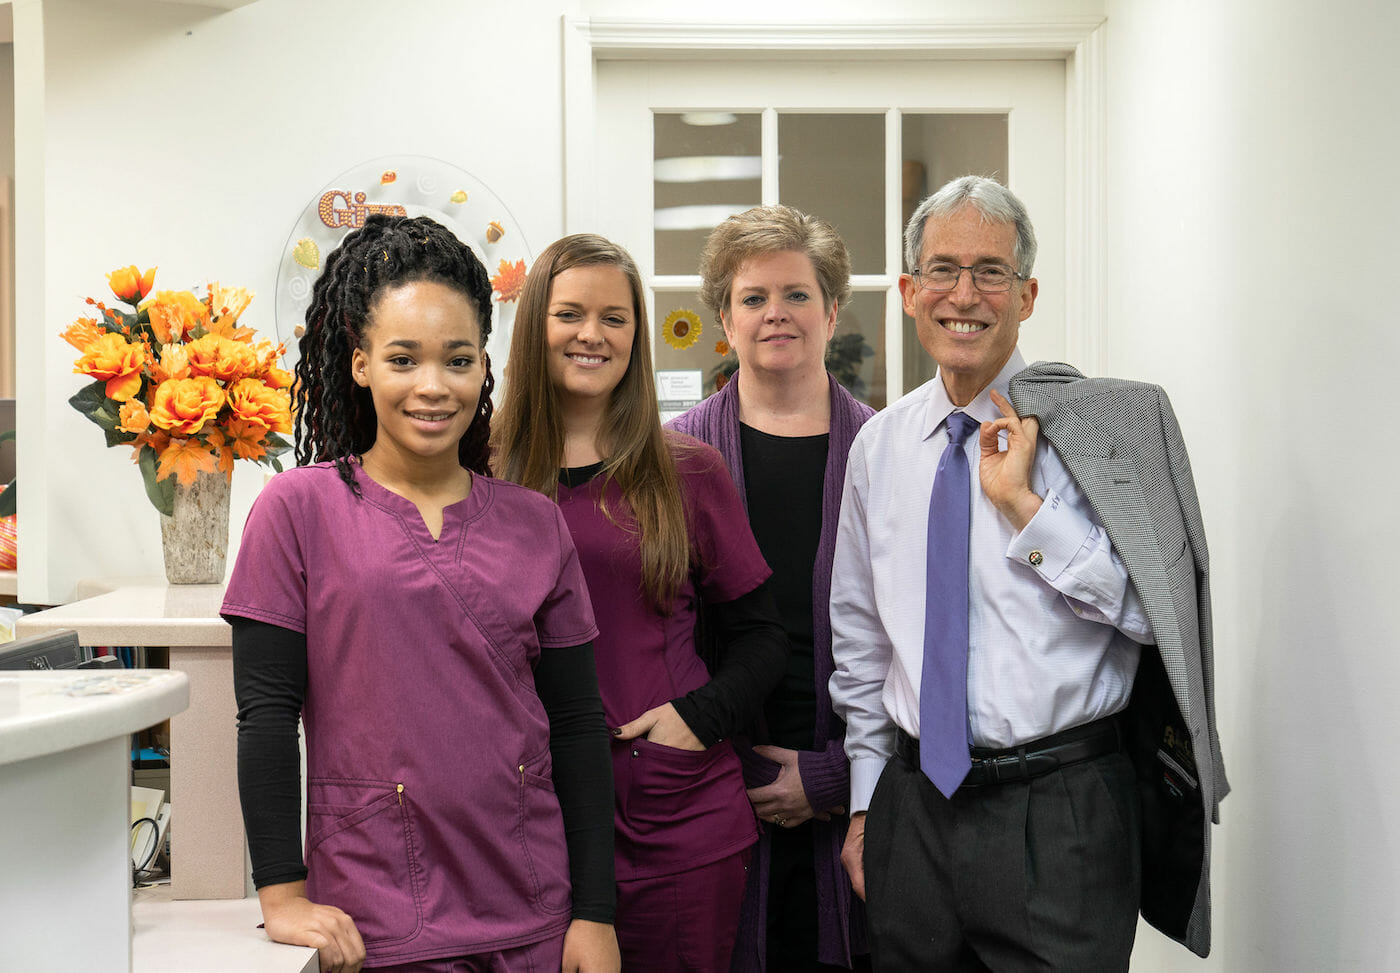 Dr. Hollander & Team